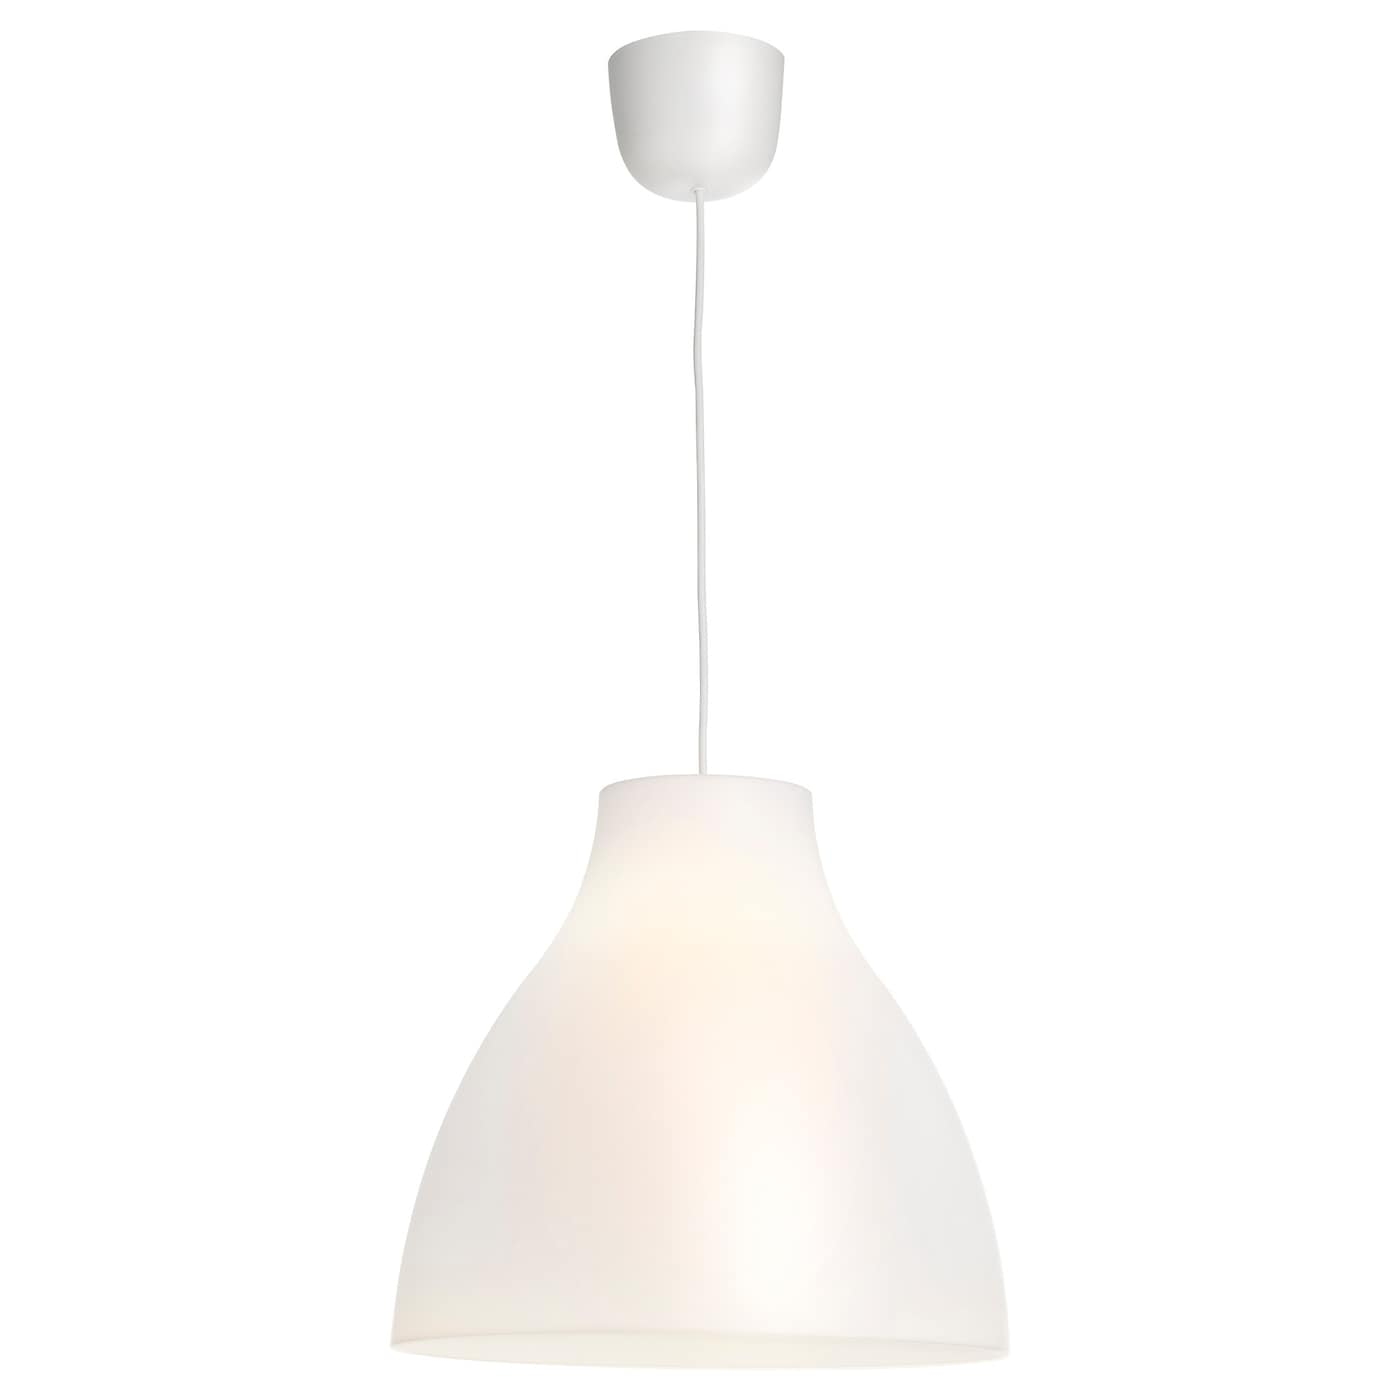 Ceiling lights led ceiling lights ikea - Luminaire suspension ikea ...